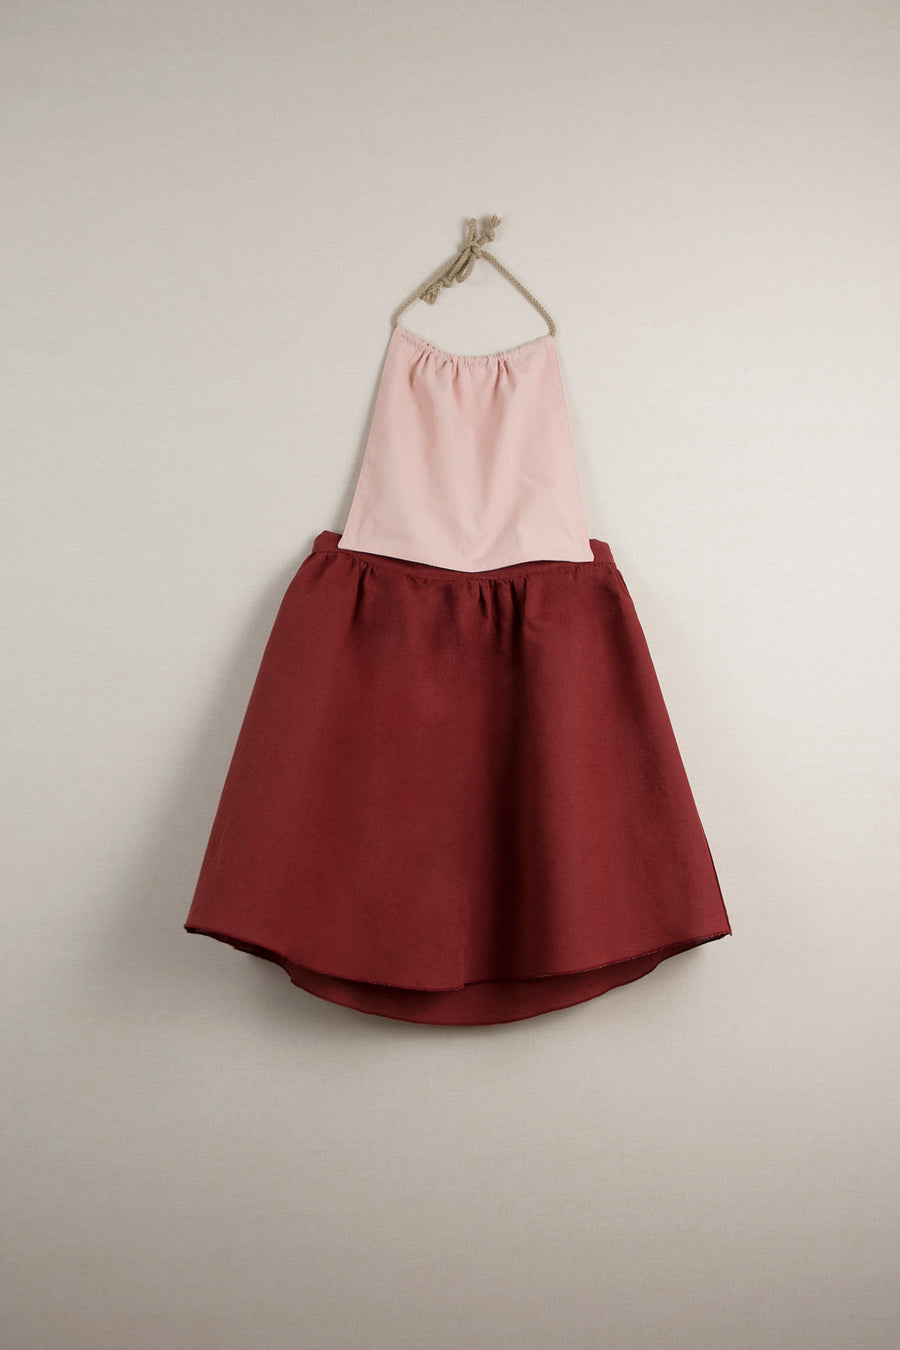 Mod. 28.3 Earth Red Reversible Dress with Removable Bib